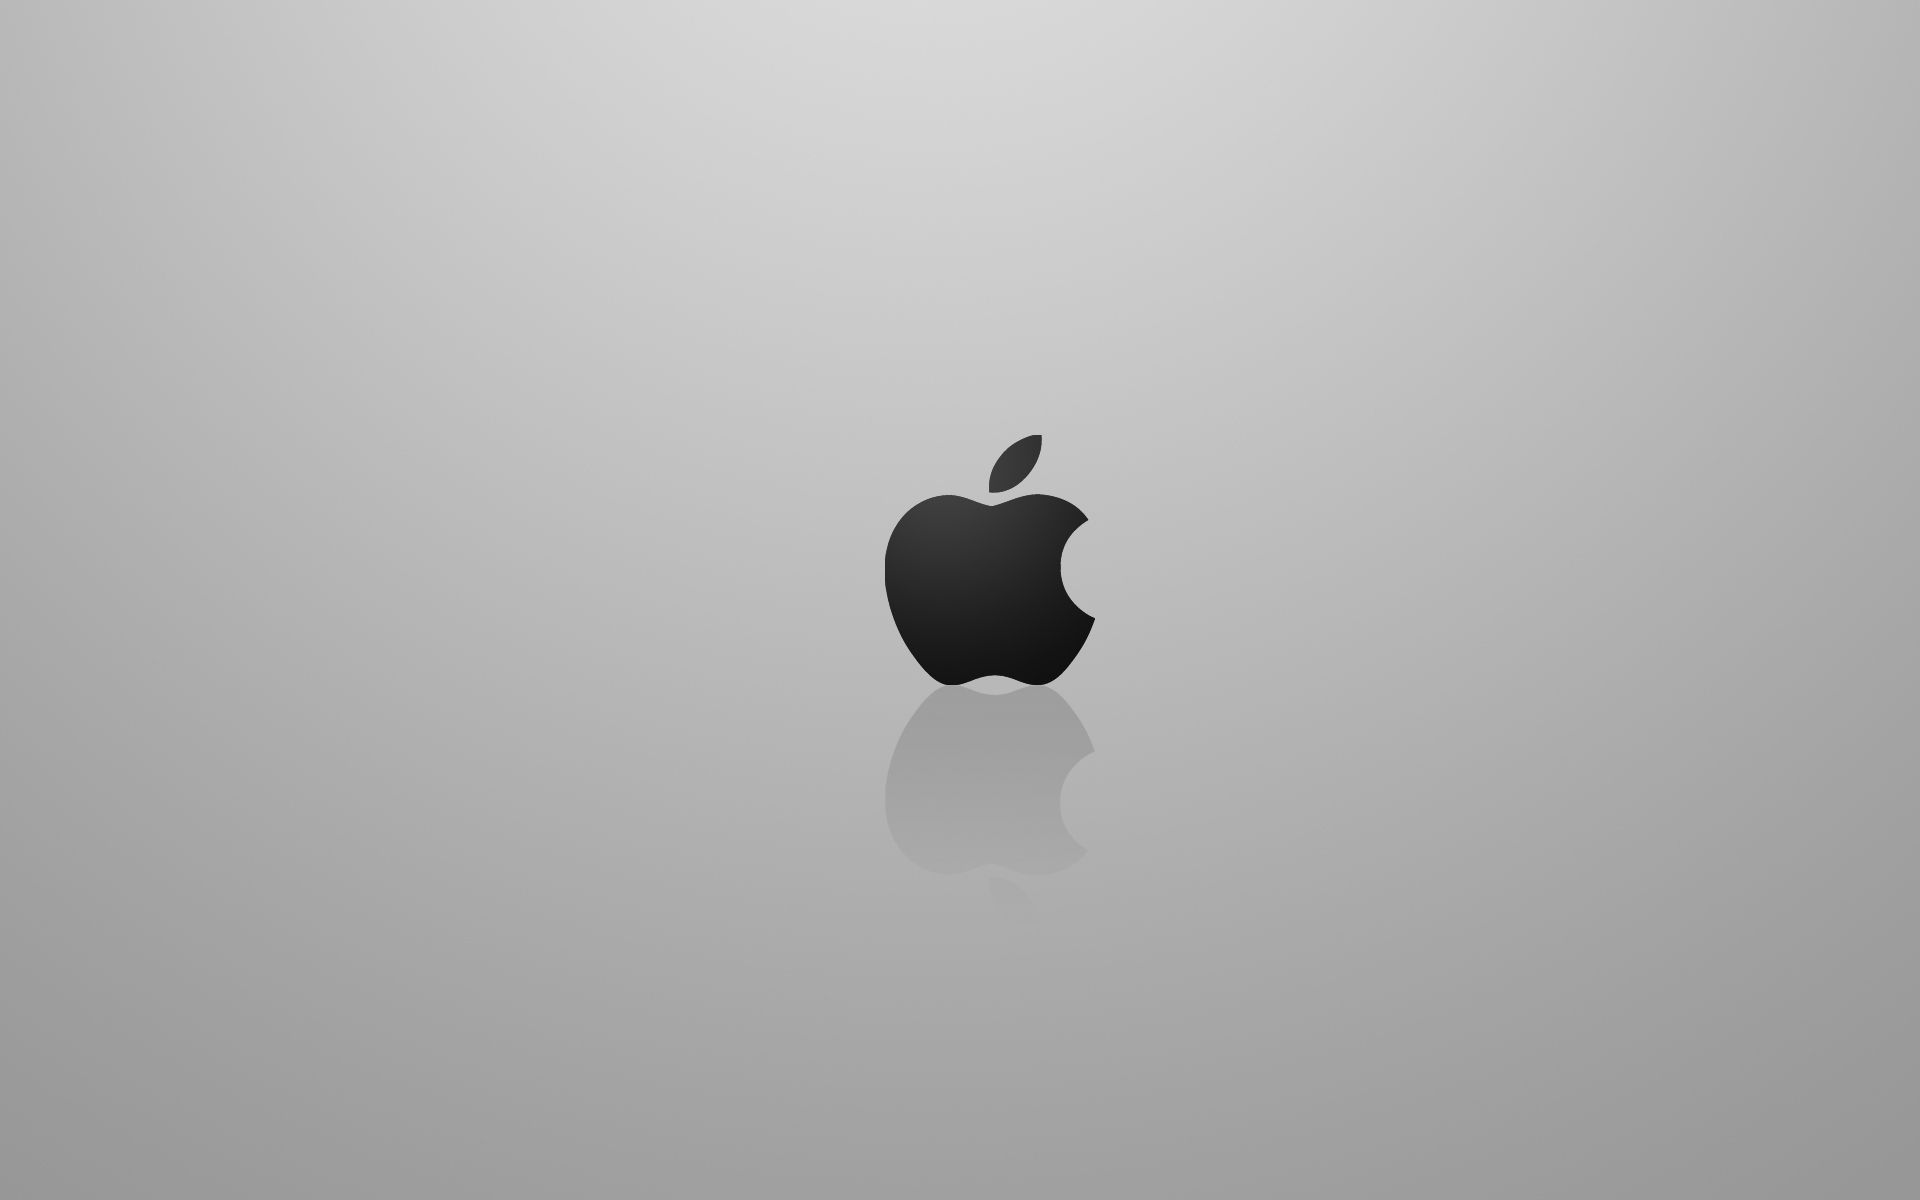 hd apple wallpaper desktop wallpapers system wallpaper 1920×1200 hd